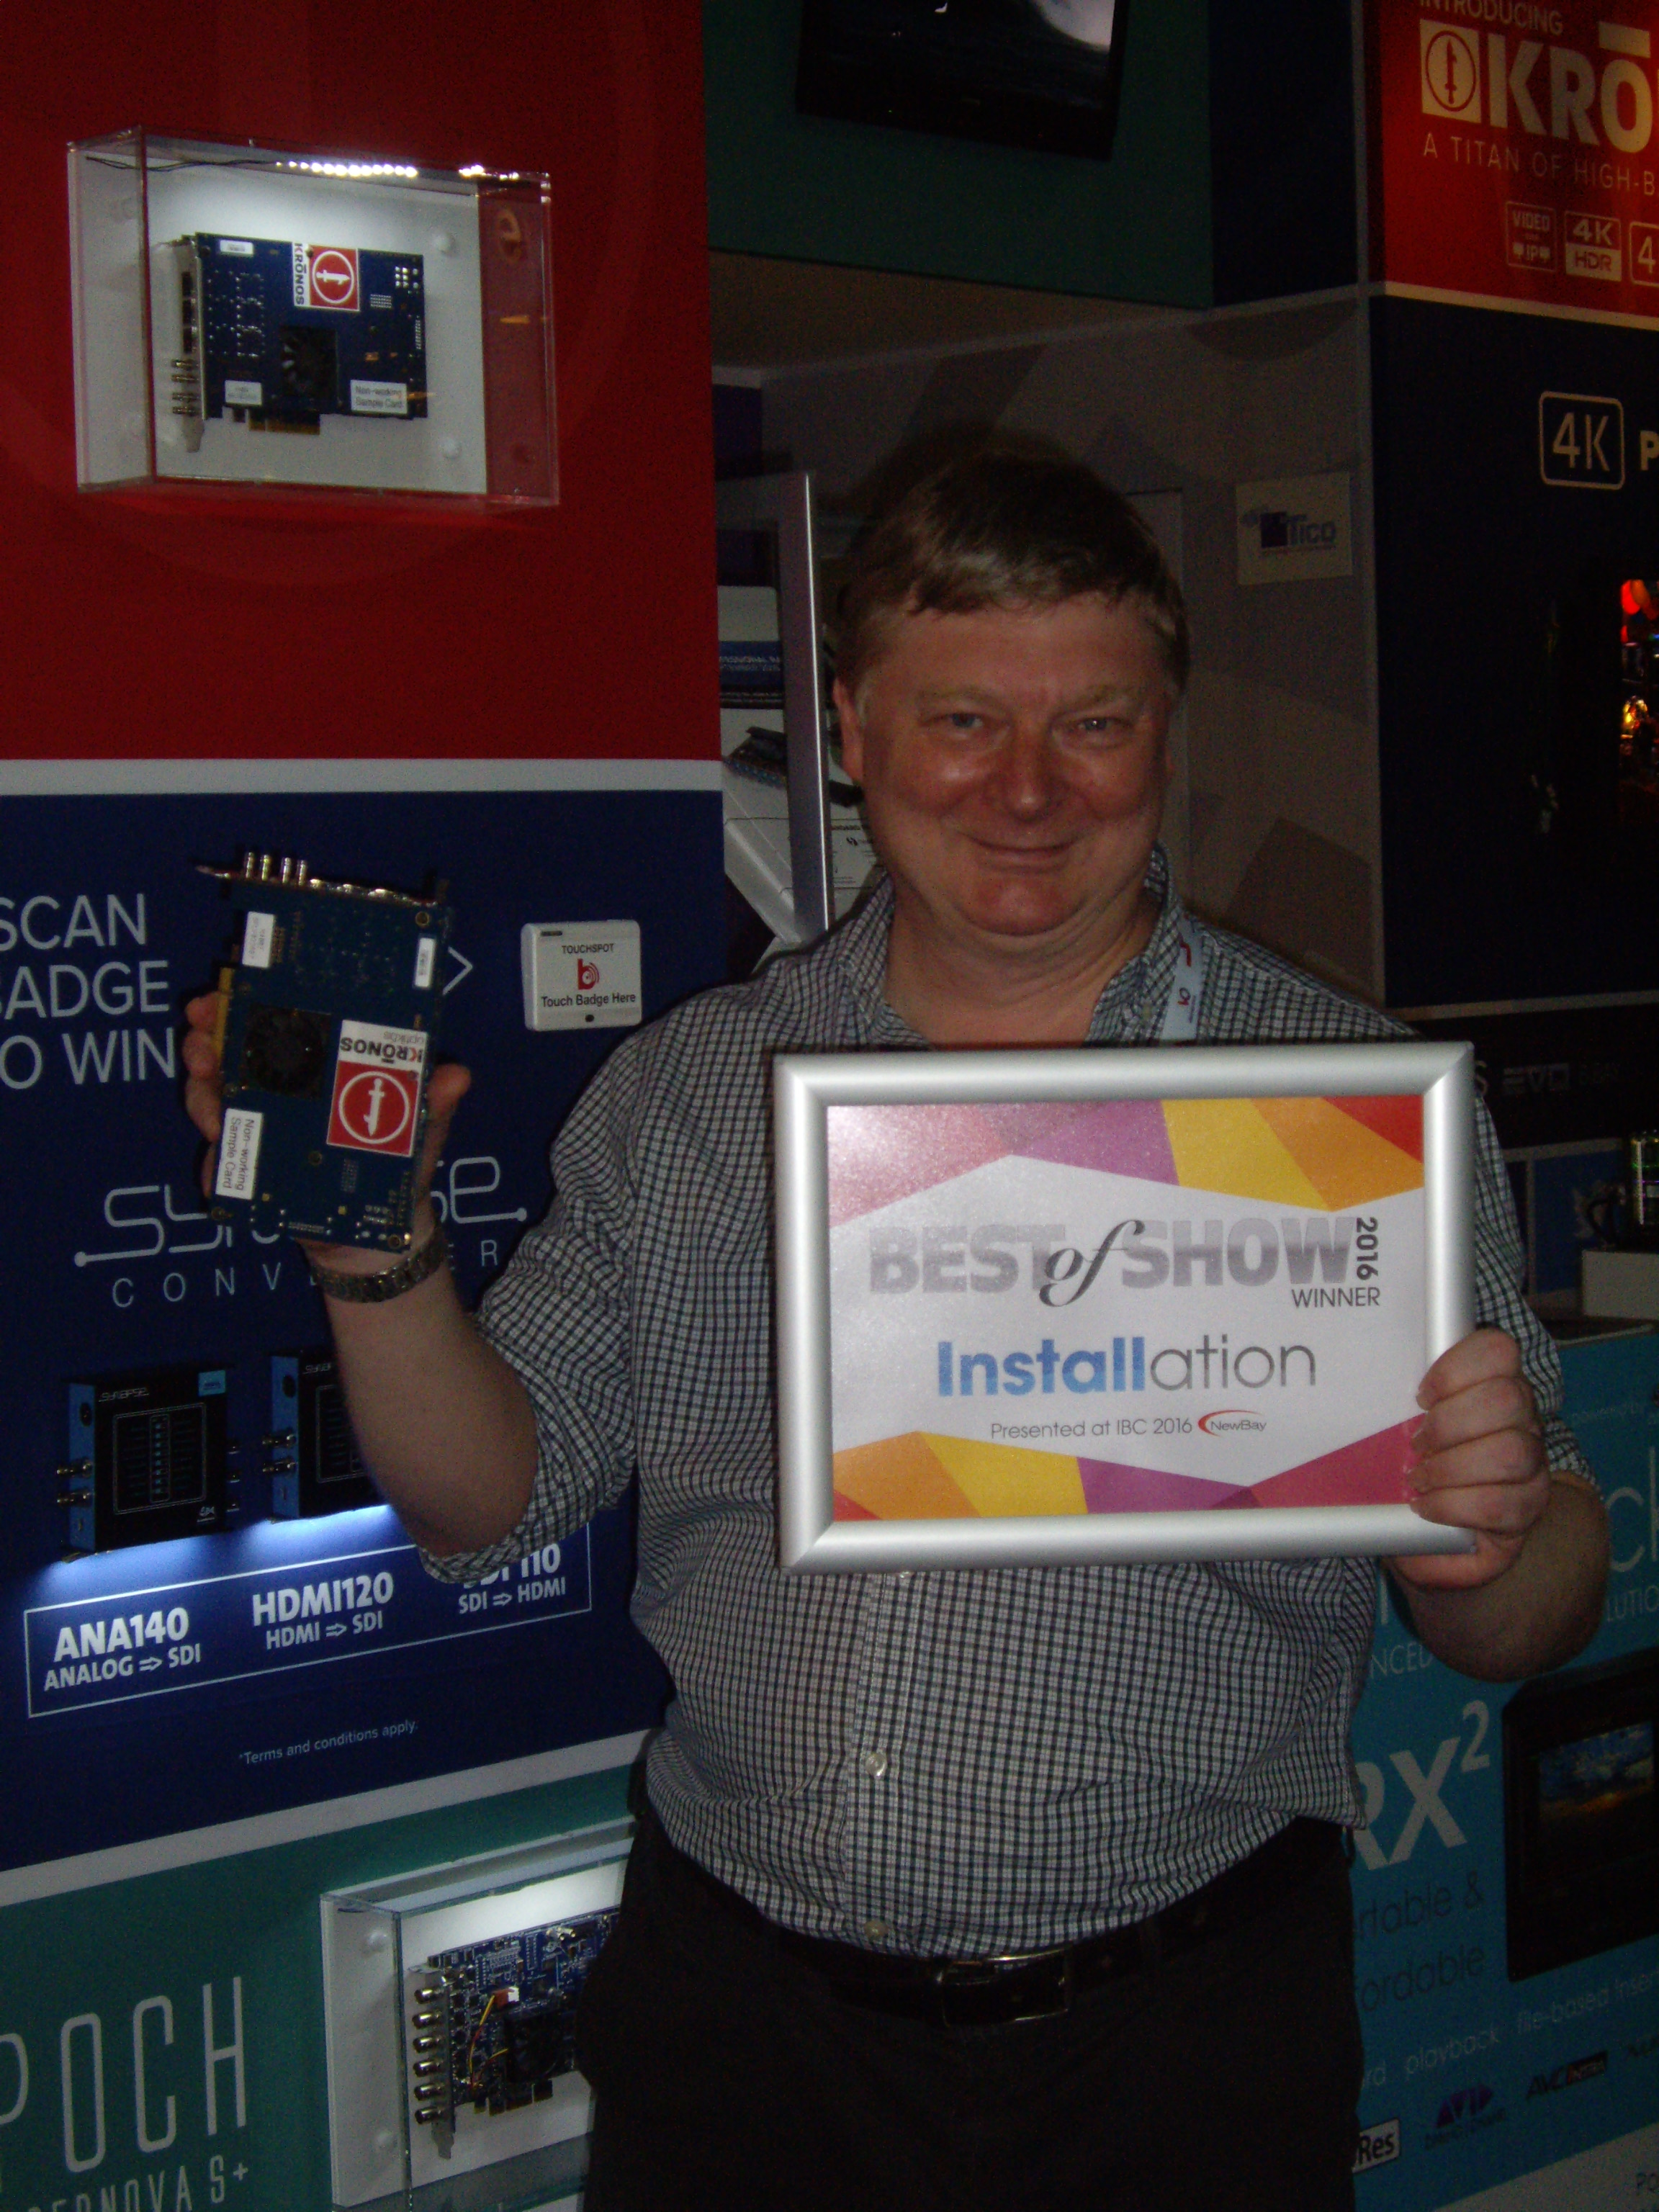 Bluefish444_Jonathan with Installation Awards and Kronos Card_IBC 2016